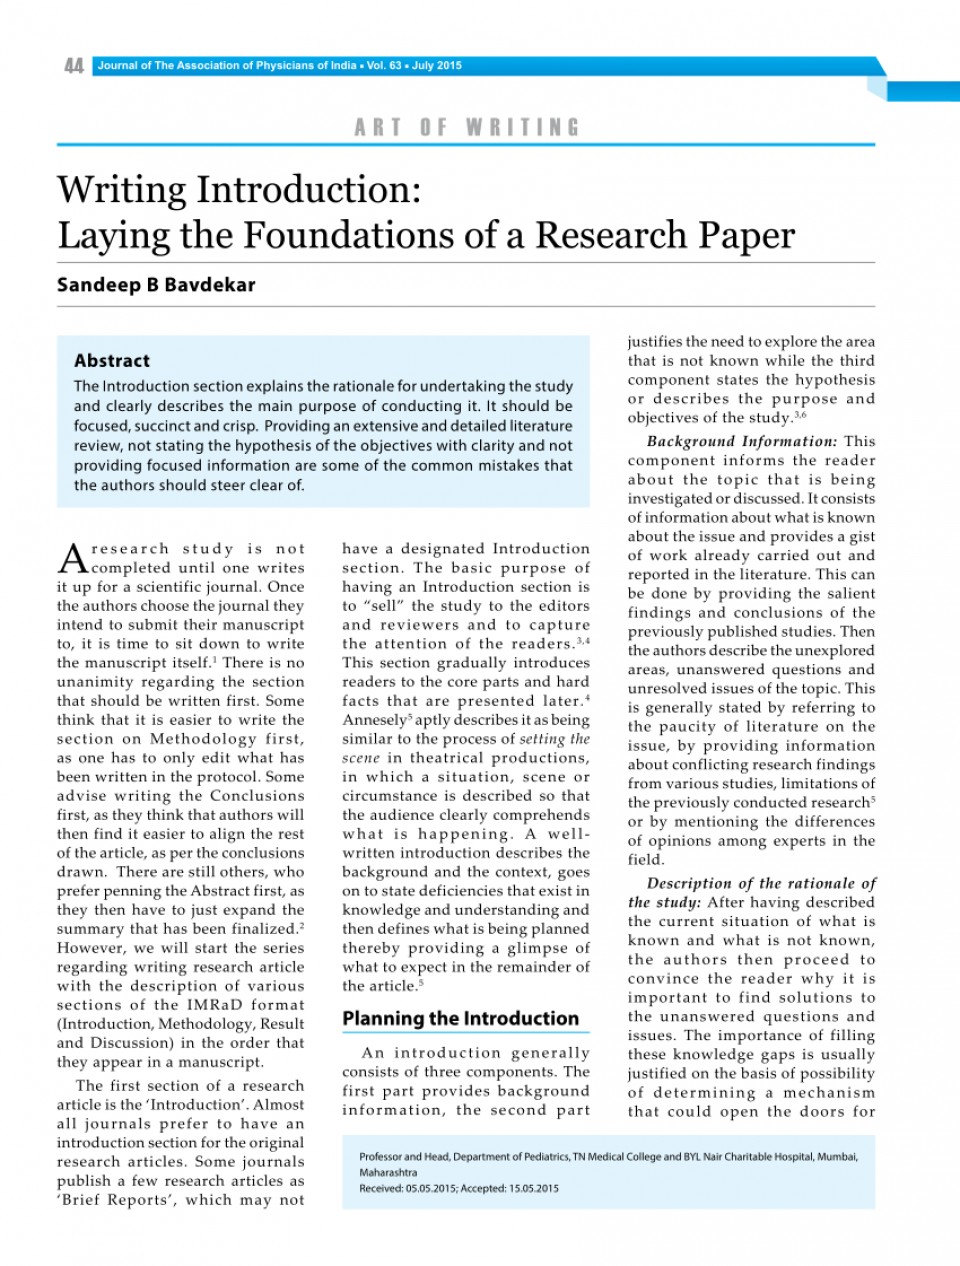 004 Example Of Introduction In Research Paper Unique Imrad Format About Smoking Cyberbullying 960